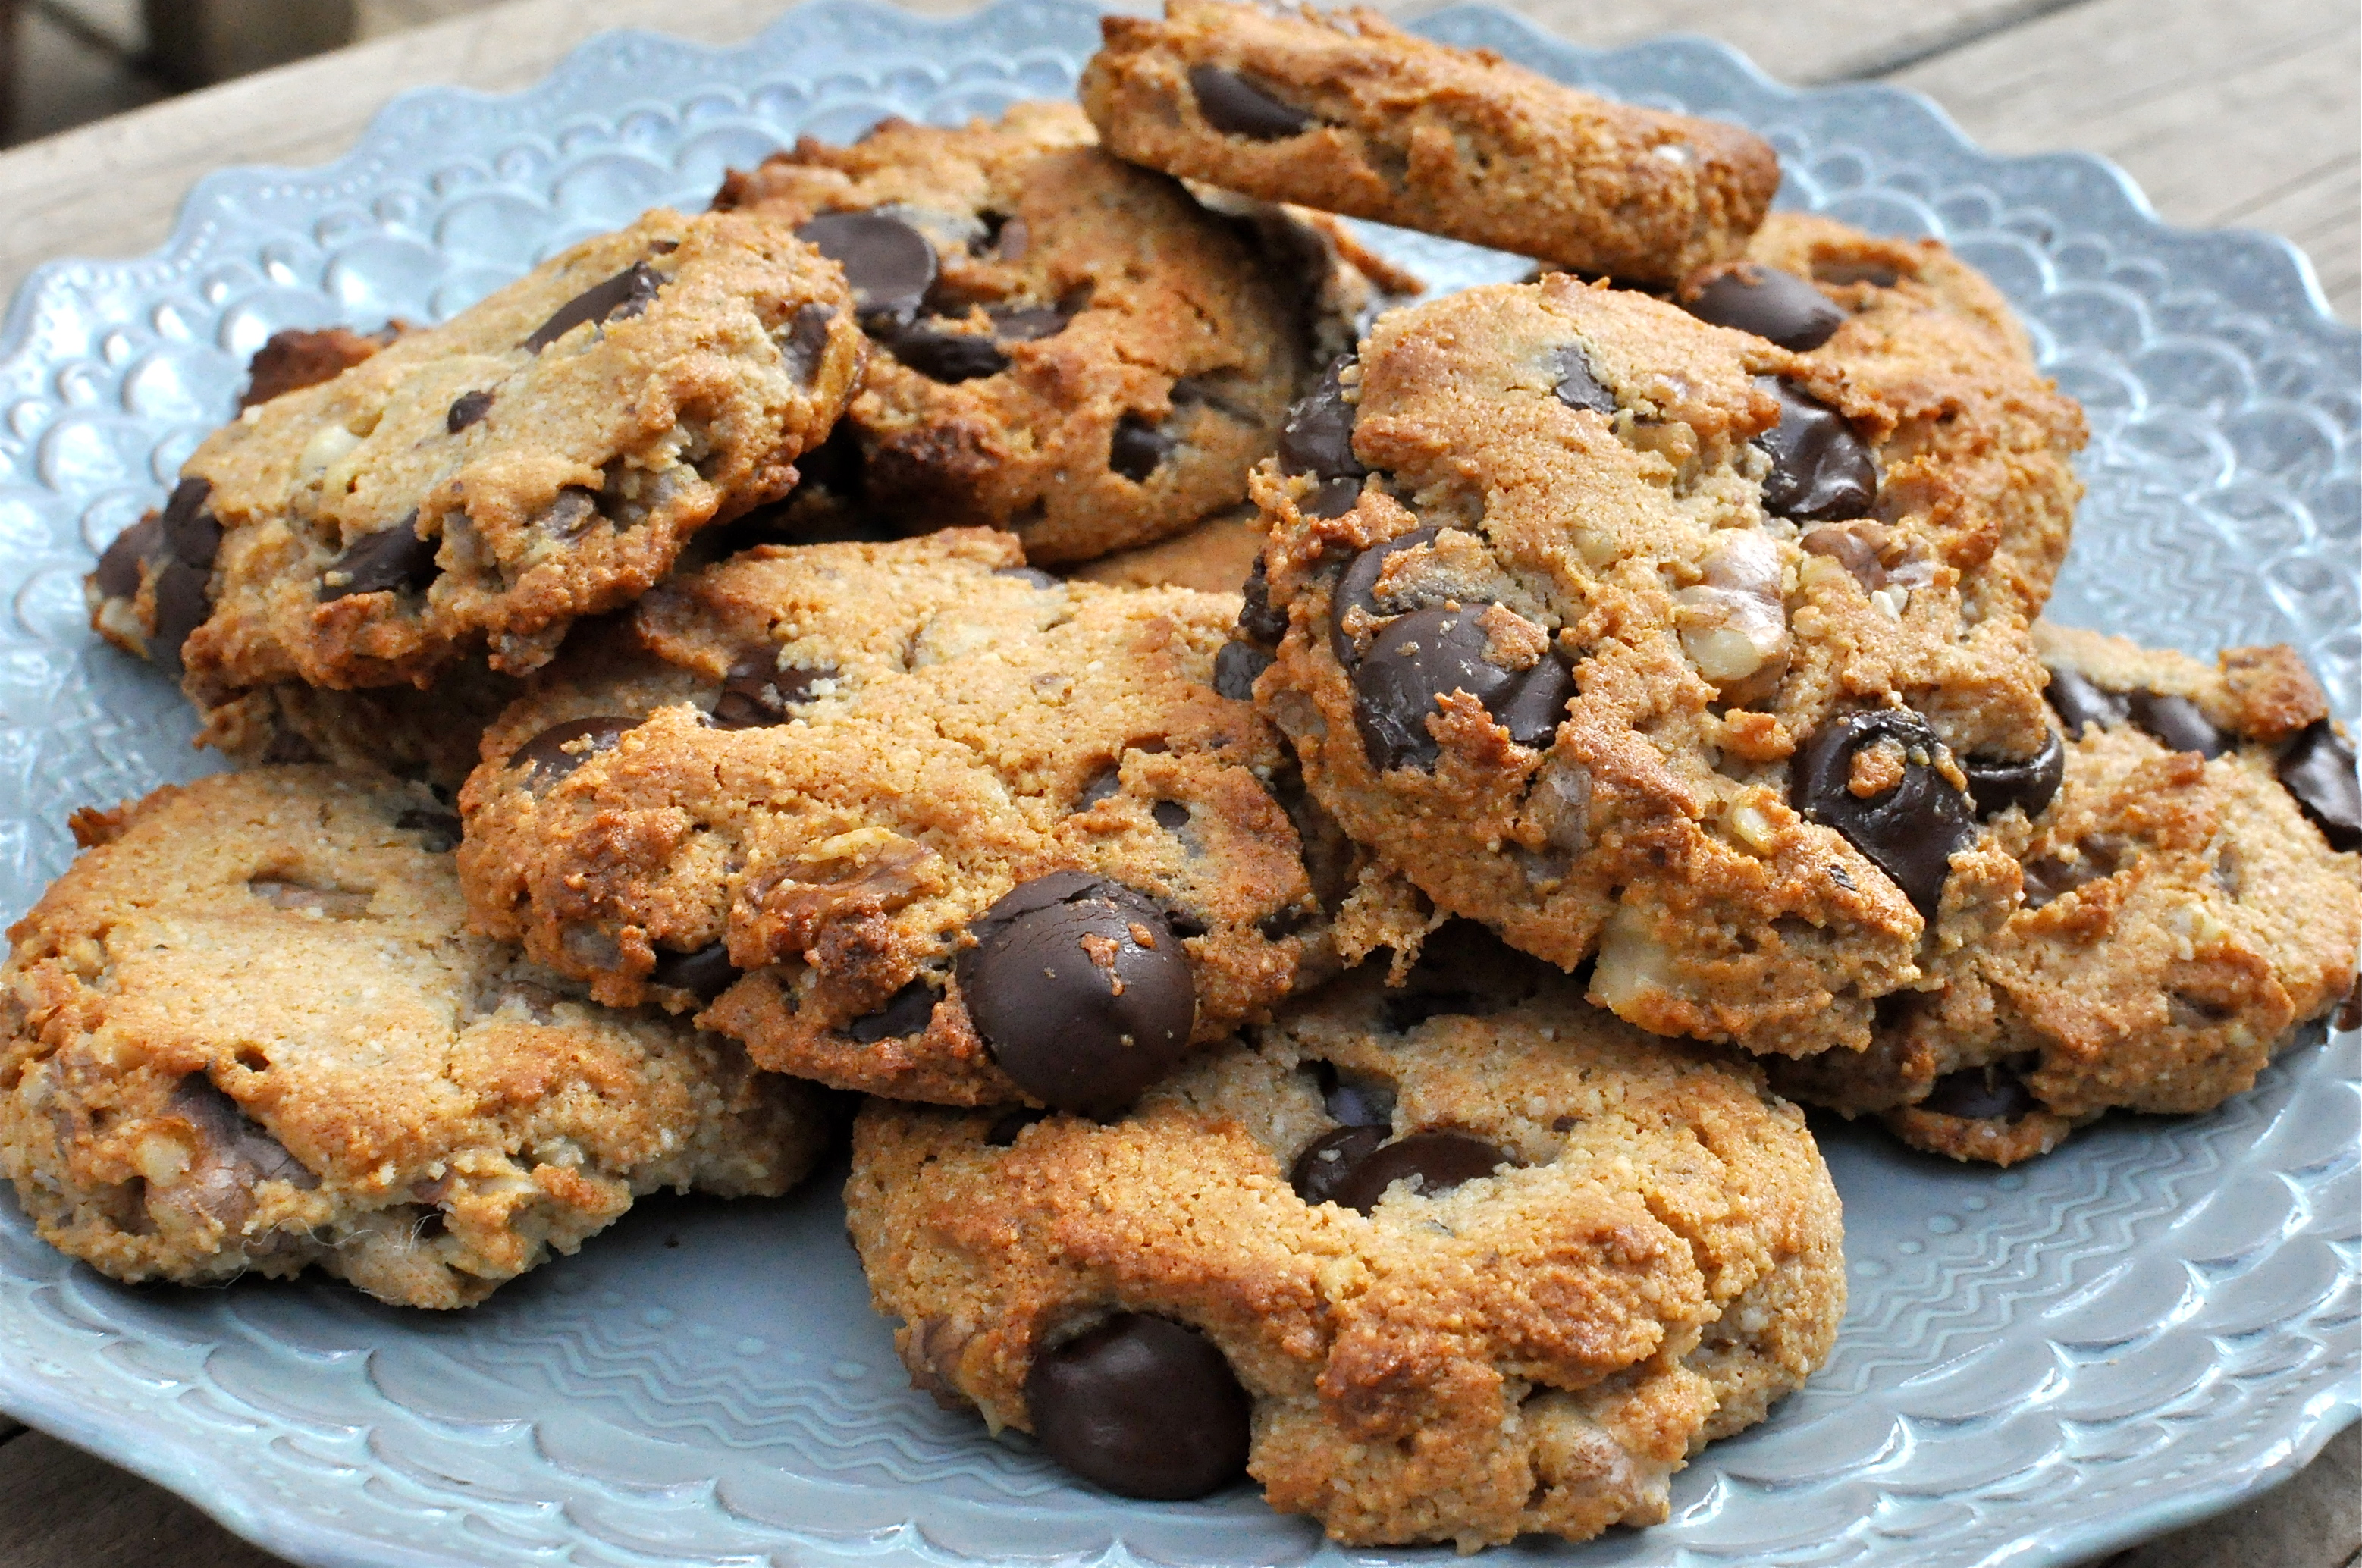 Fed & Fit » Paleo Dark Chocolate Chip Walnut Cookies